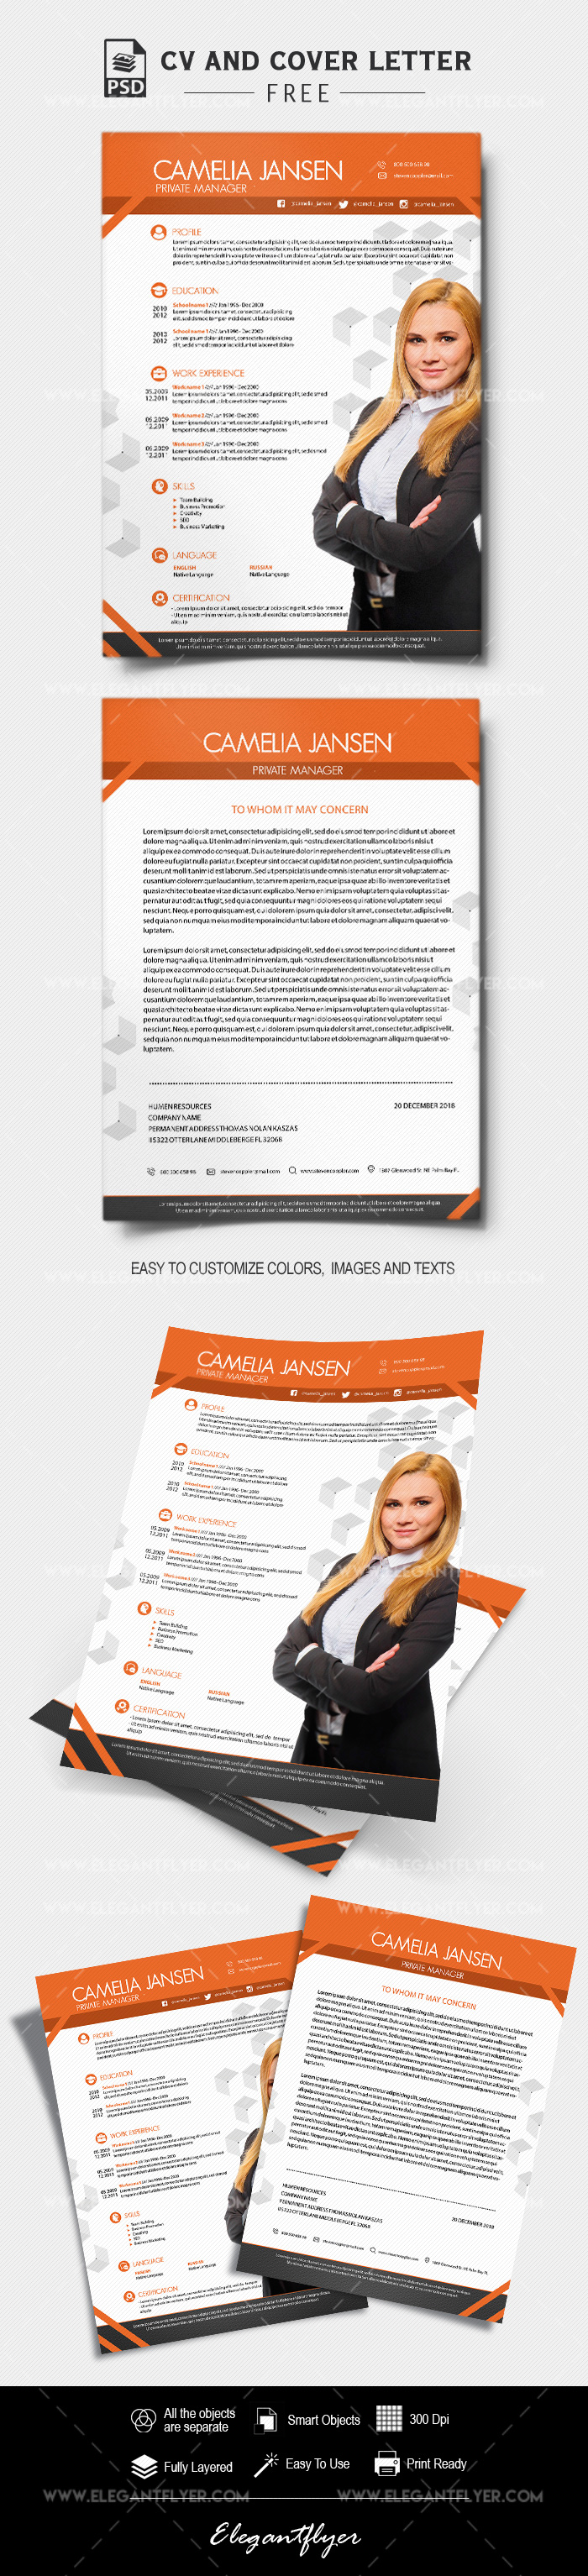 manager  u2013 free cv and cover letter psd template  u2013 by elegantflyer